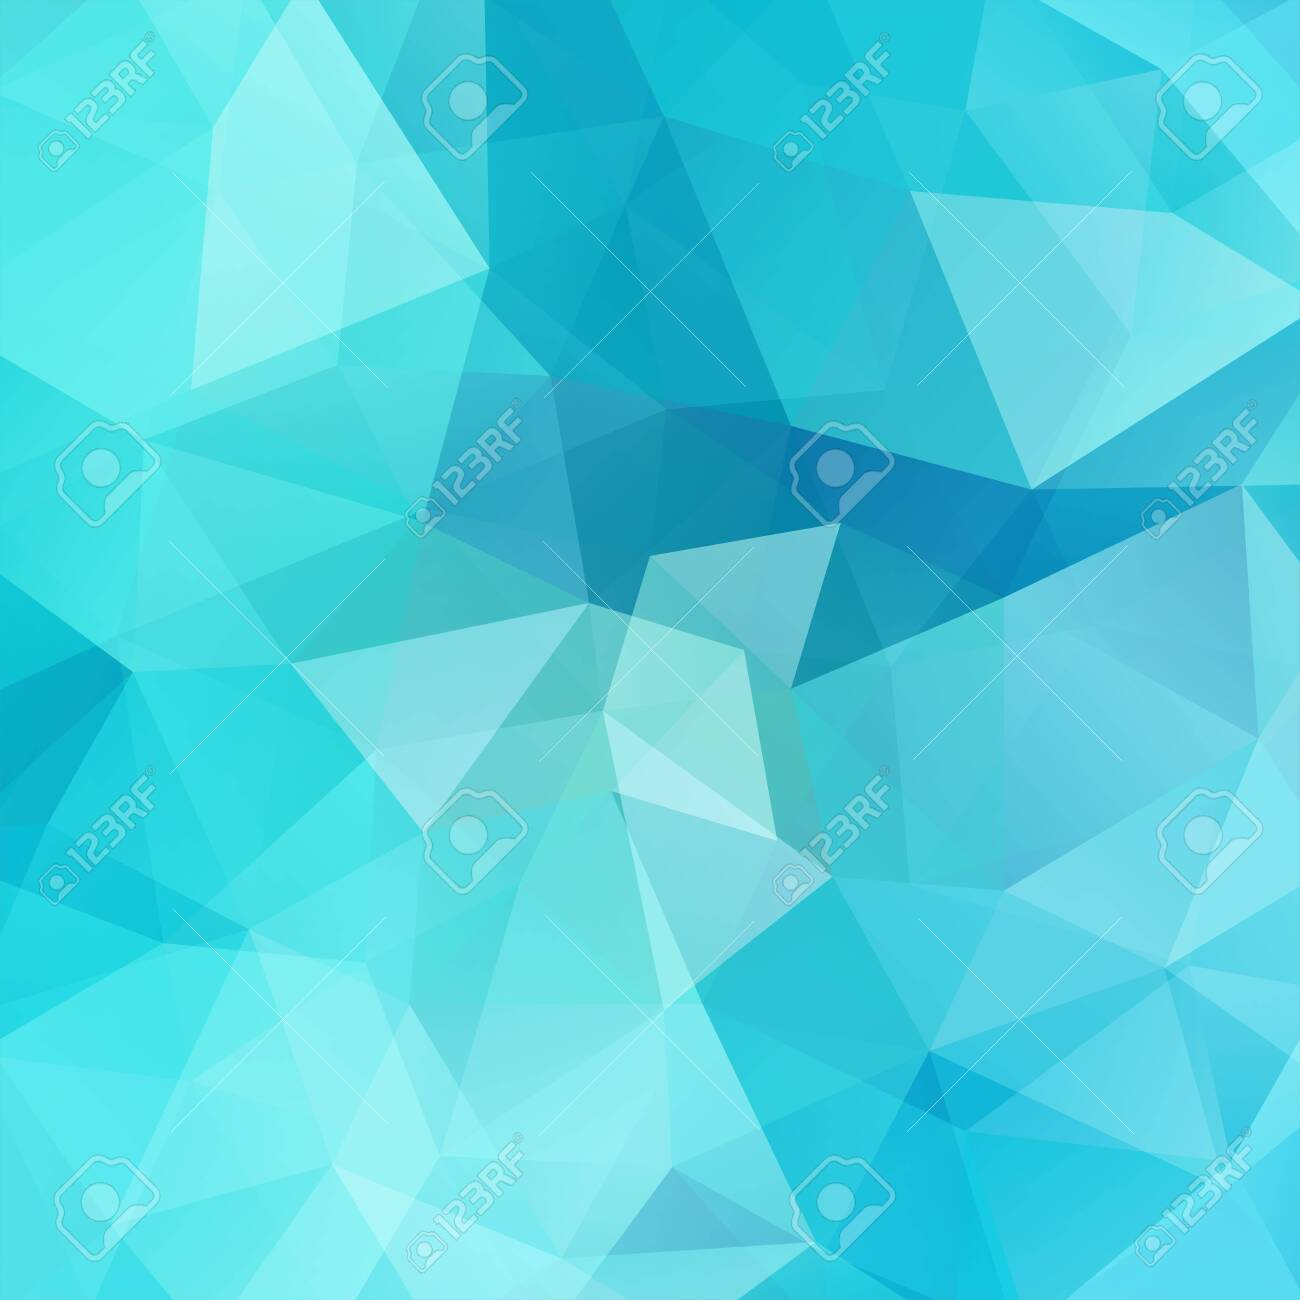 Abstract geometric style blue background. Vector illustration - 120610661